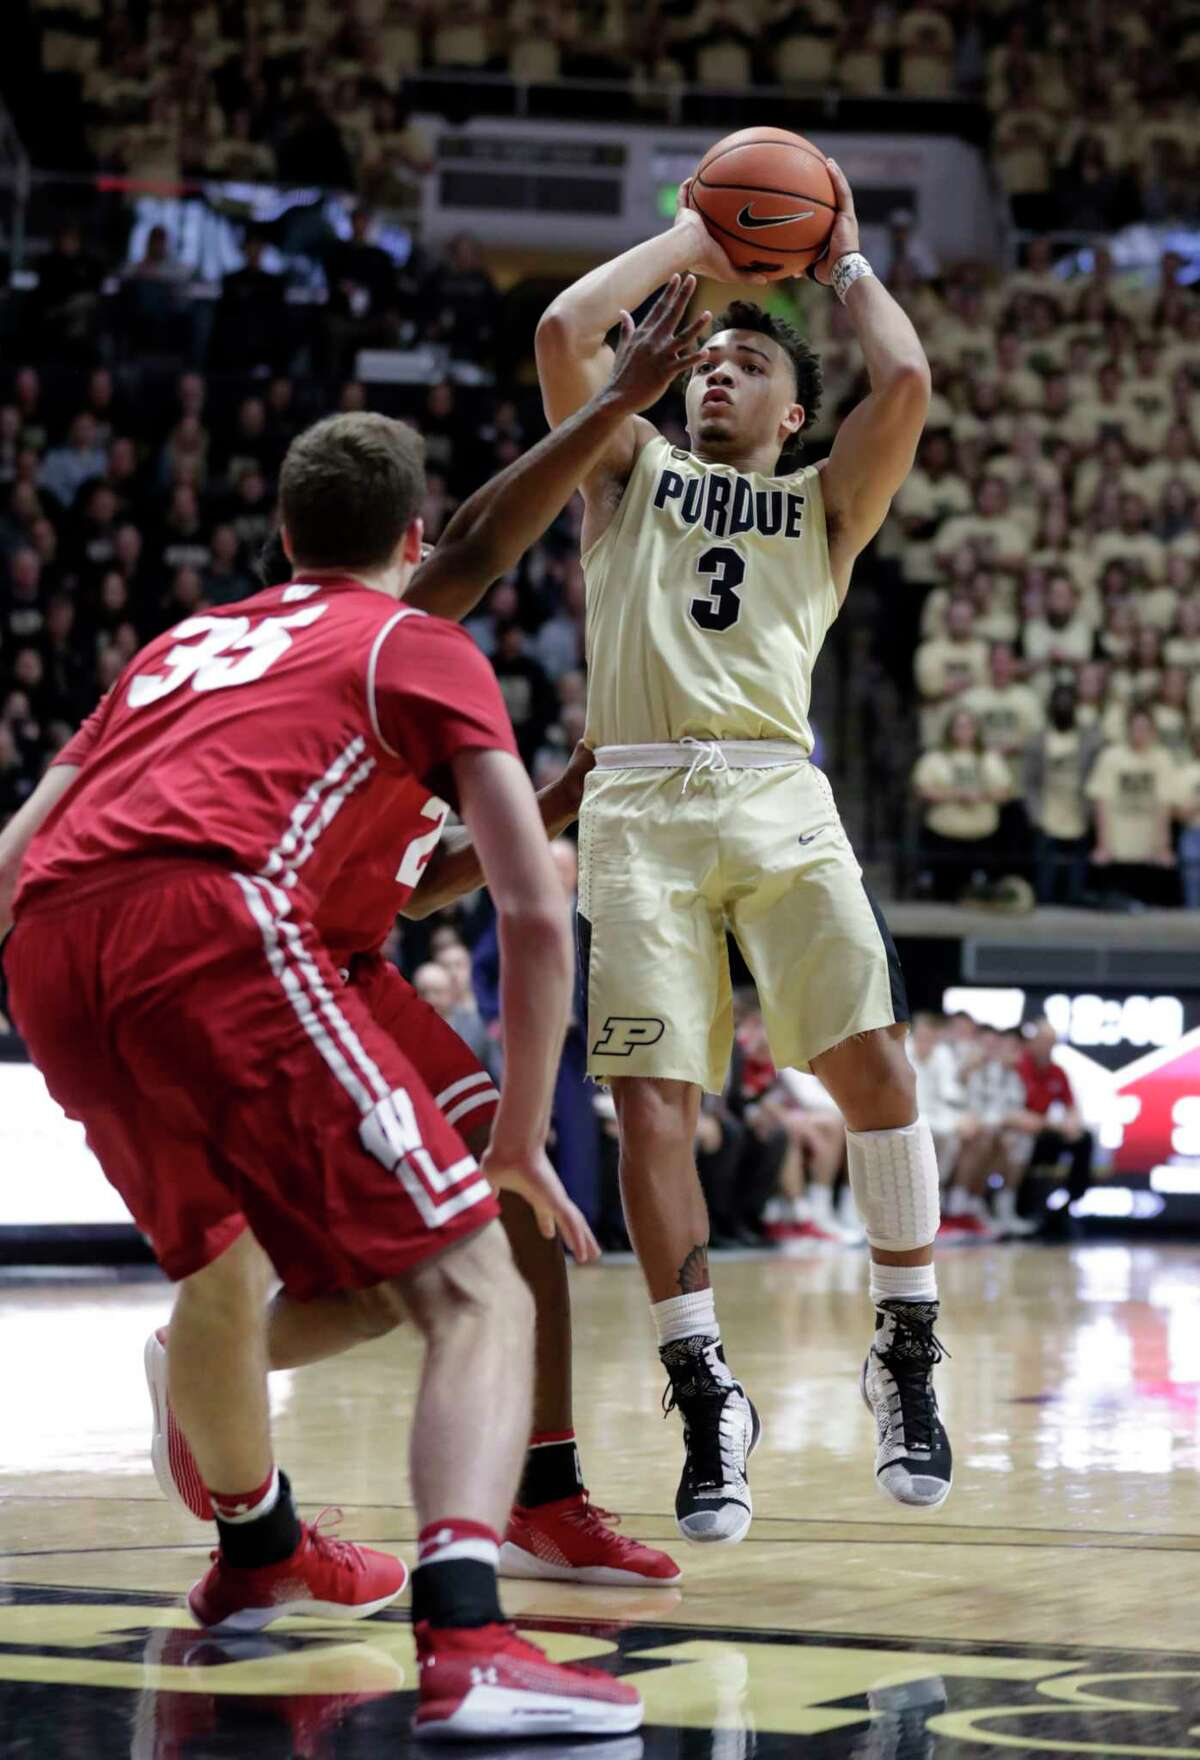 Purdue guard Carsen Edwards (3) shoots over Wisconsin forward Nate Reuvers (35) in the second half of an NCAA college basketball game in West Lafayette, Ind., Tuesday, Jan. 16, 2018. Purdue defeated Wisconsin 78-50. (AP Photo/Michael Conroy)